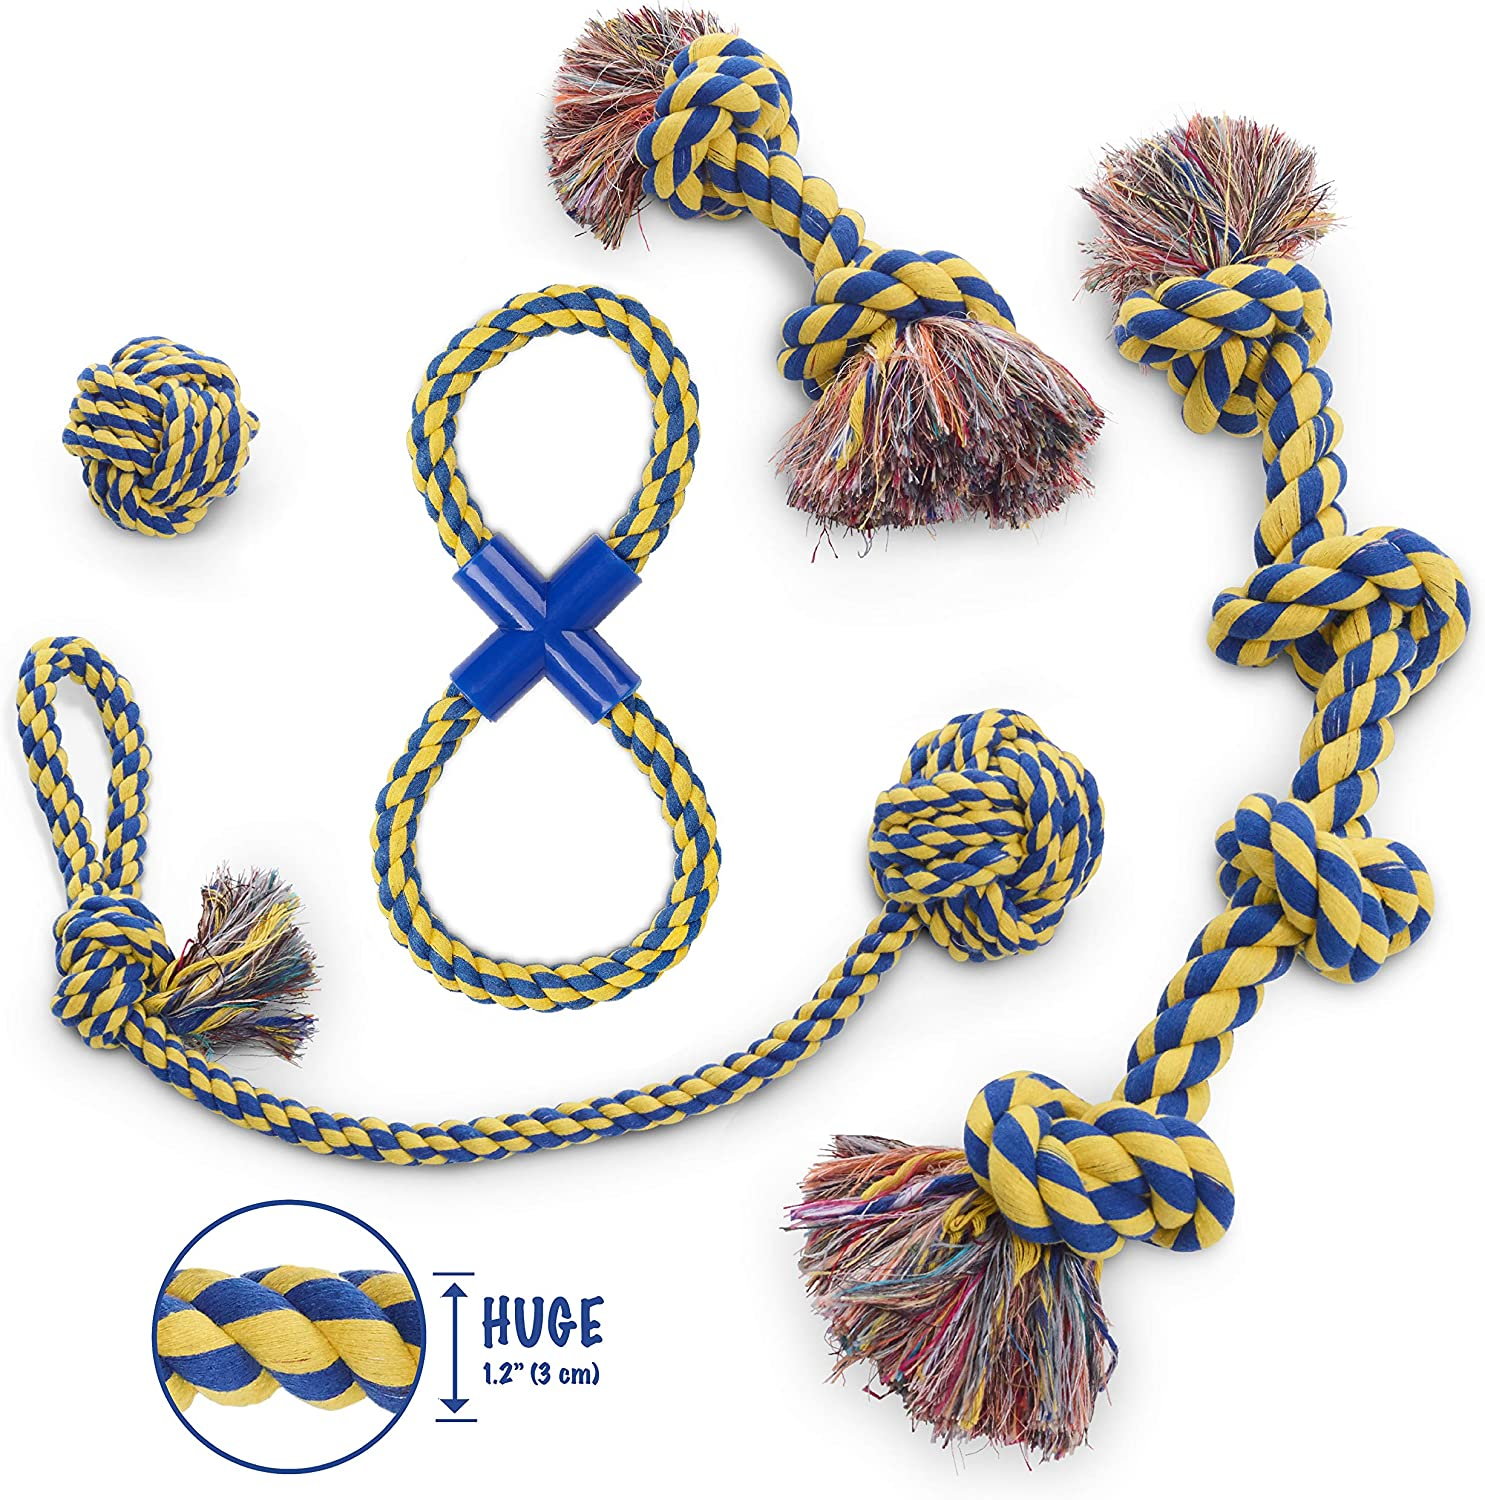 MAS  Dog Rope Toy, 5pc Set, EXTRA THICK Durable Quality, 100% NATURAL COTTON, Medium, Large, Extra Large Dogs, Mental Stimulation, Aggressive Chewers, Dental Hygiene, Puppy Behavioral Training Toy